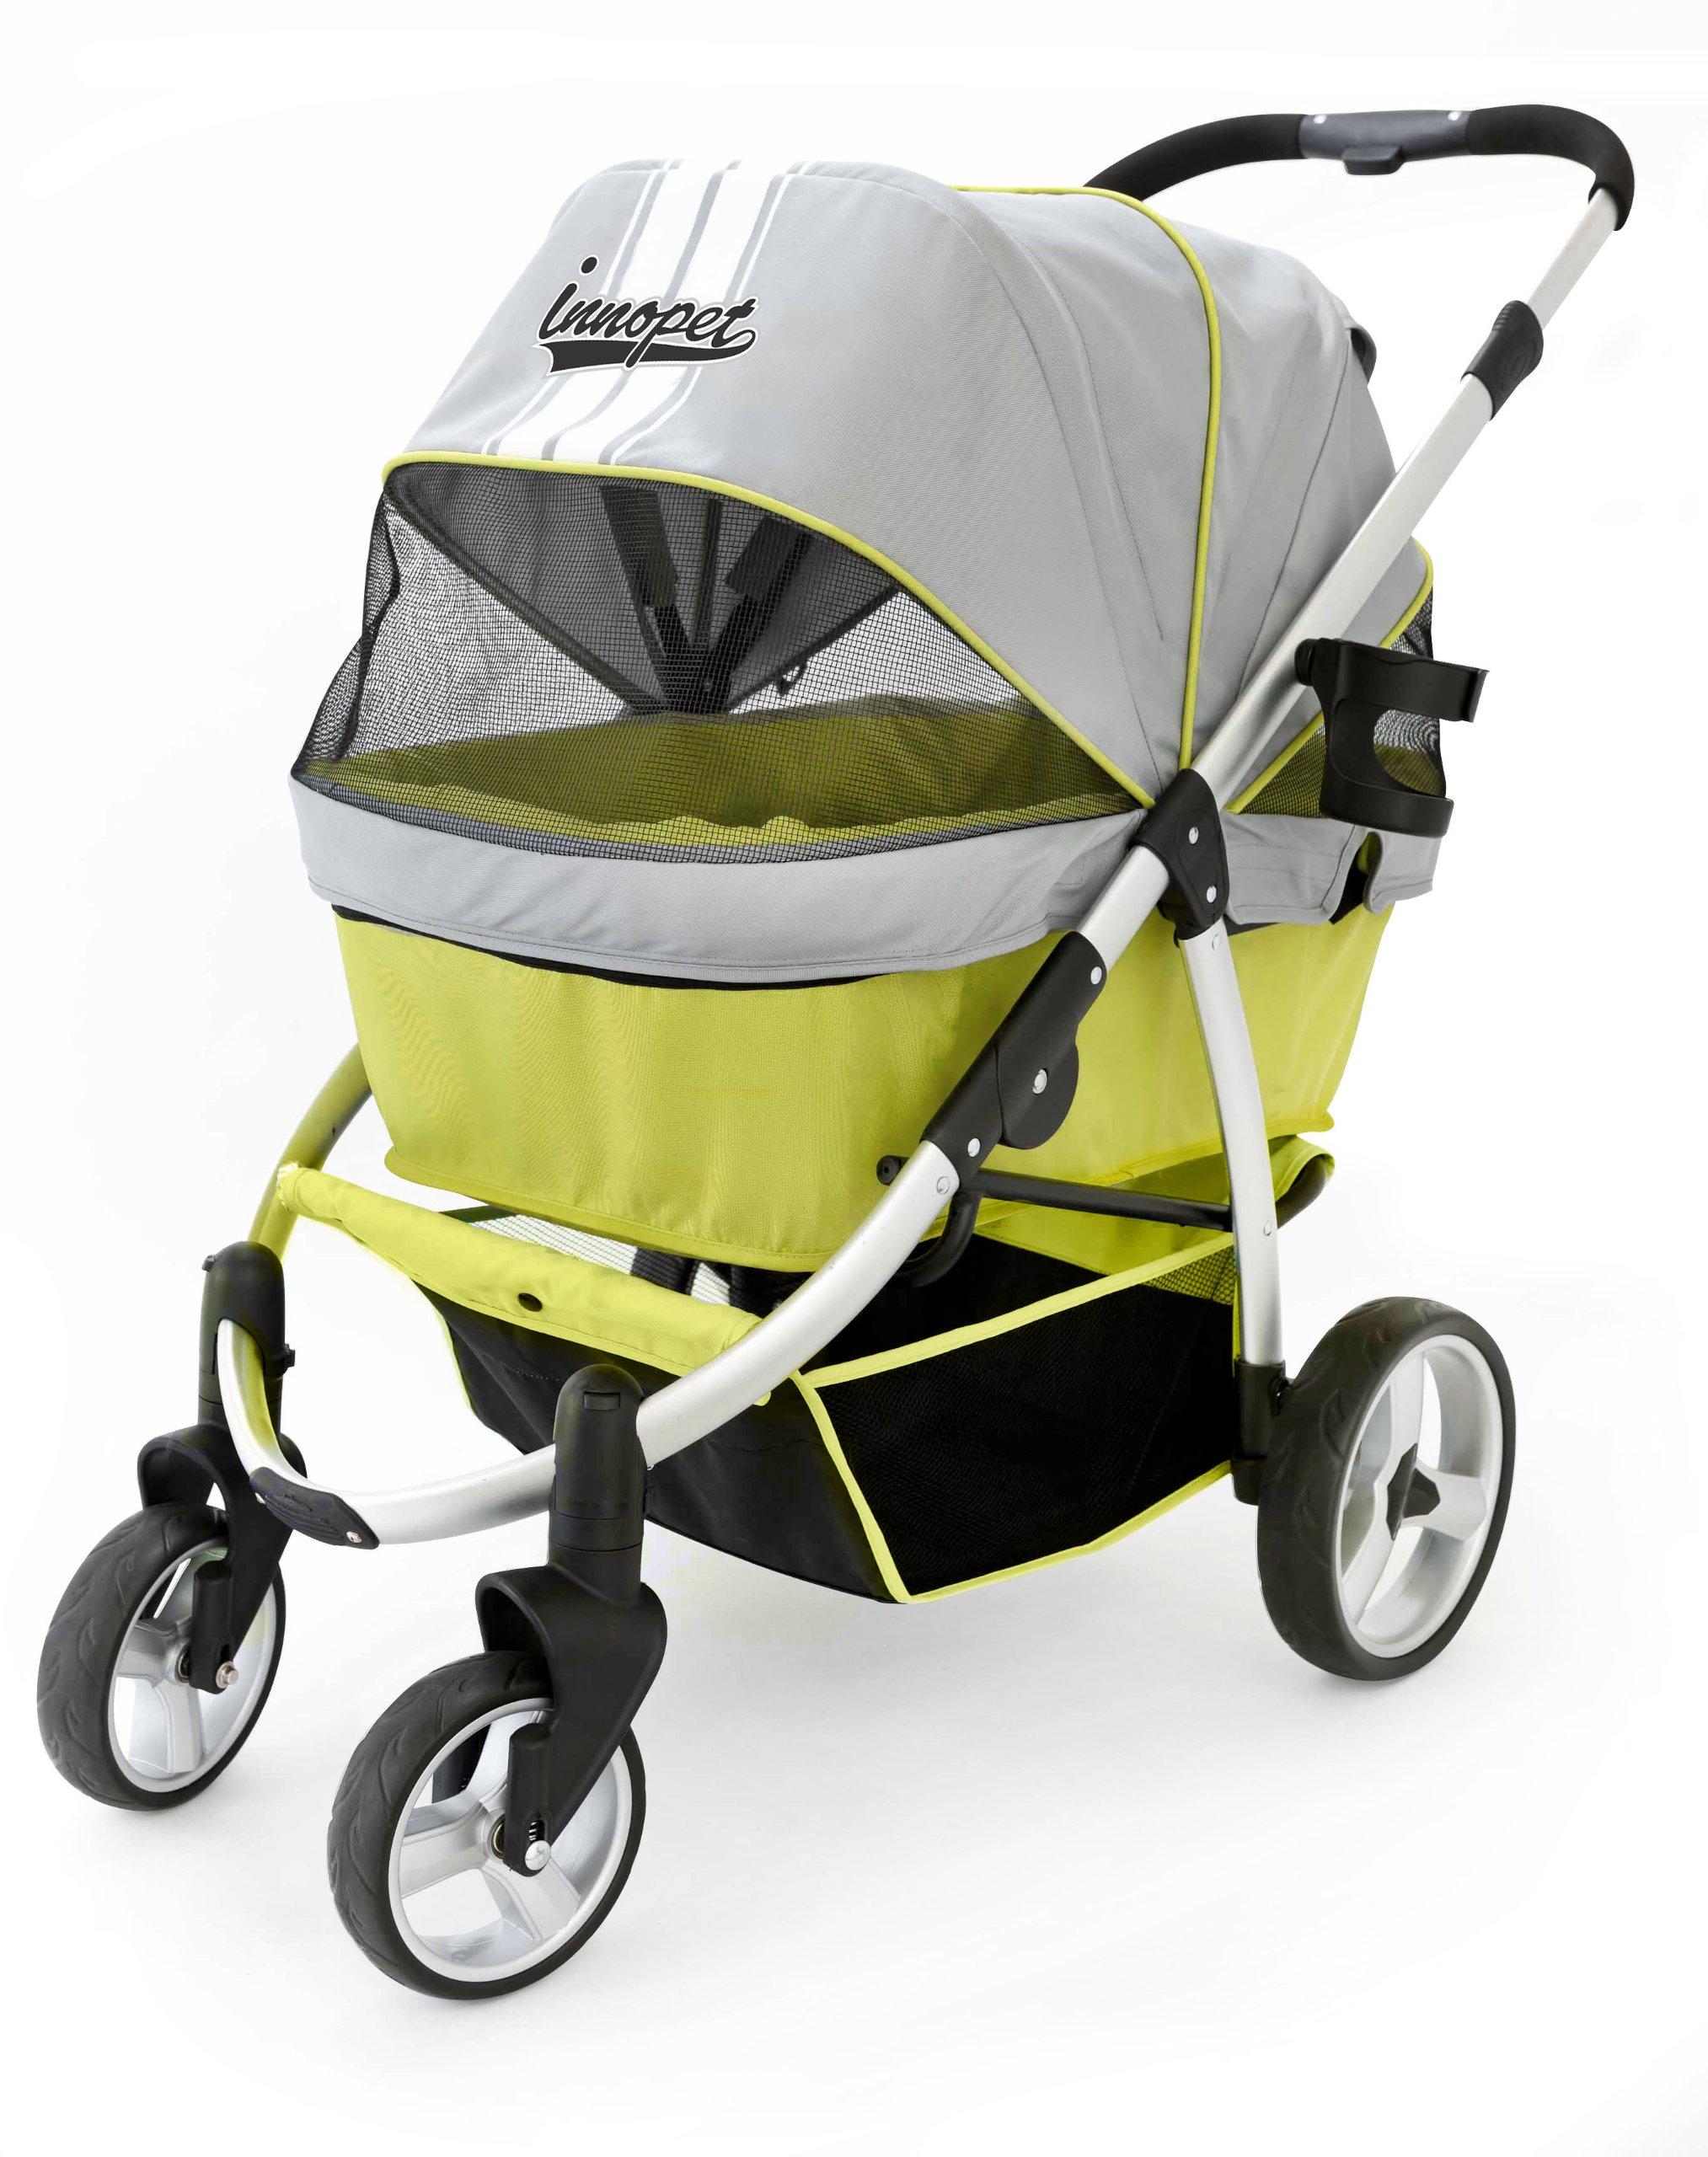 Innopet Pet Stroller, IPS-06/Green, Dog Carrier, Trolley, Trailer, Buggy Retro. Foldable pet Buggy, Pushchair, pram for Dogs and Cats by Innopet